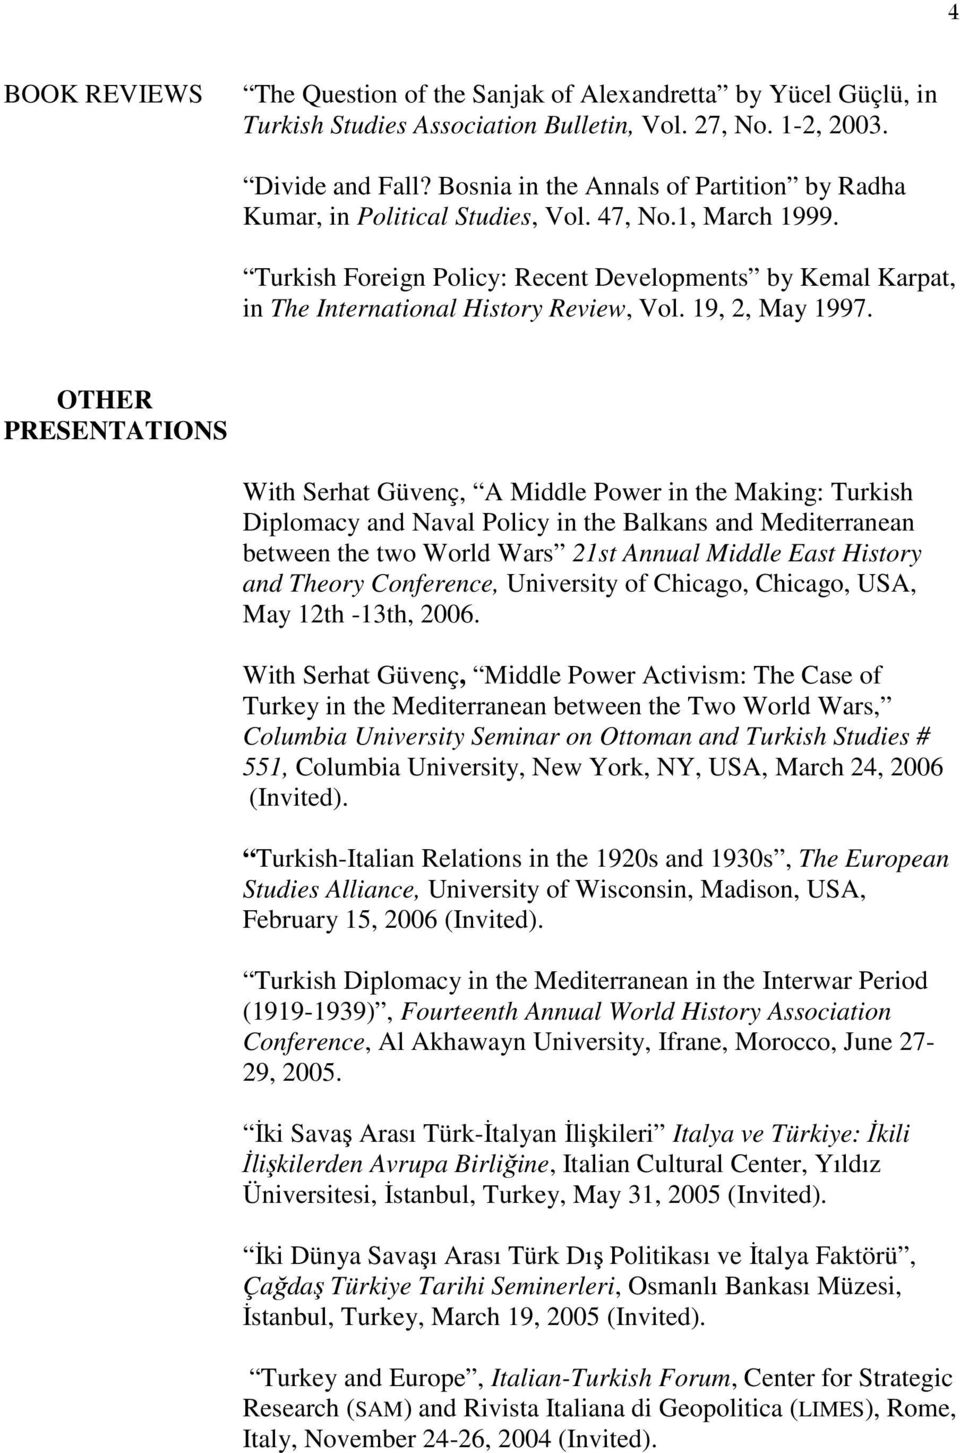 Turkish Foreign Policy: Recent Developments by Kemal Karpat, in The International History Review, Vol. 19, 2, May 1997.